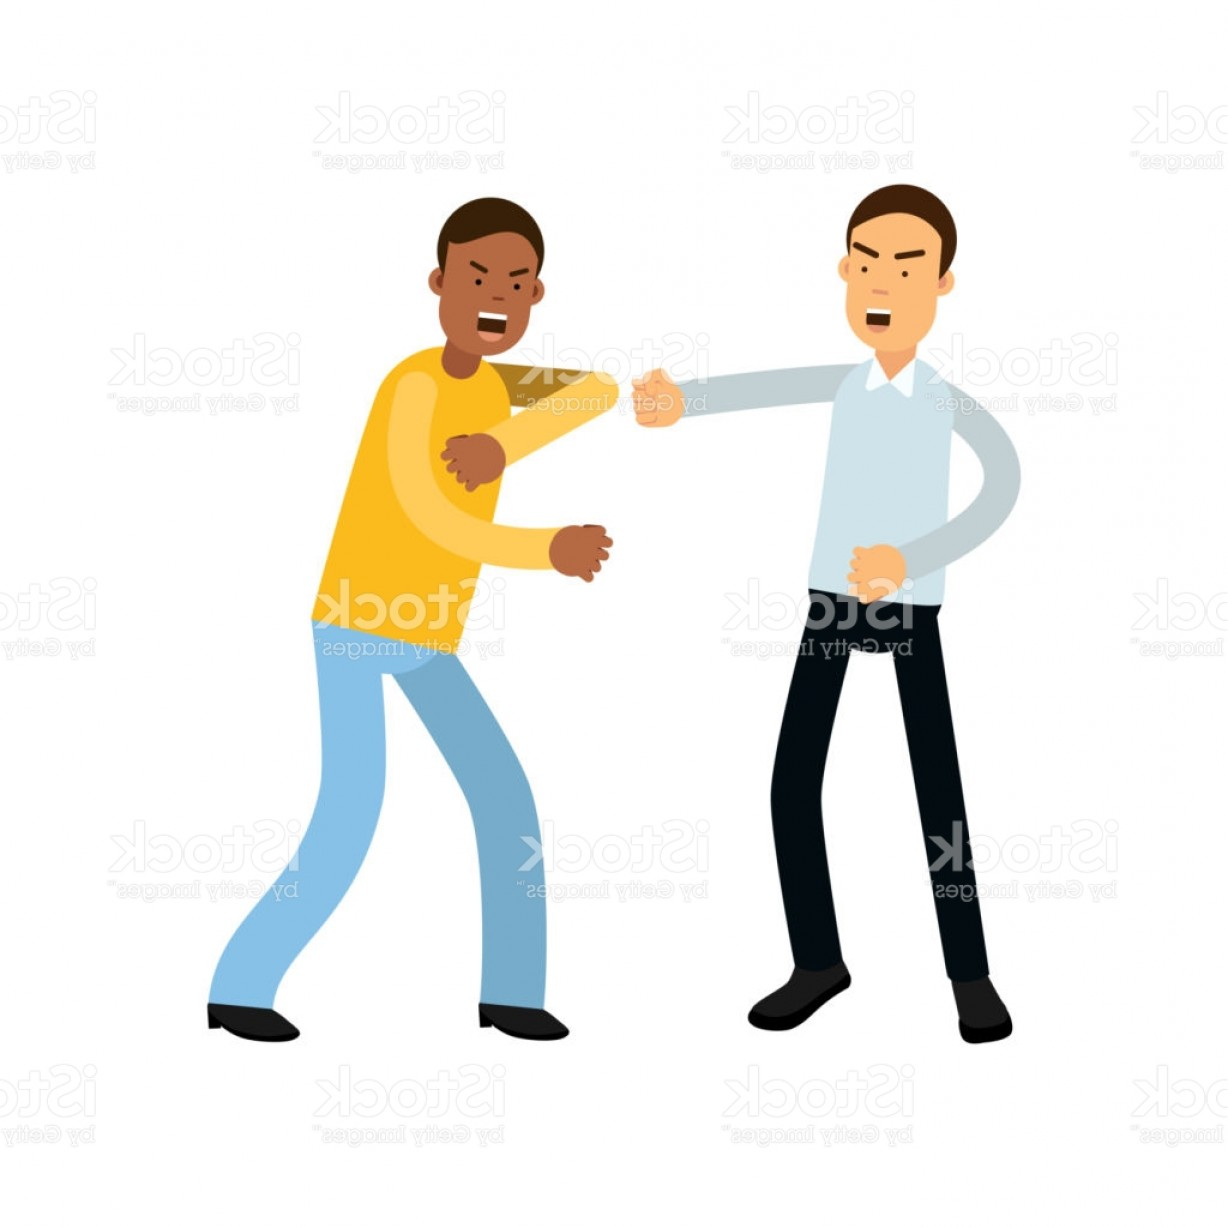 Violent Vector Art: Flat Vector Illustration Of Two Angry People Characters In Fighting Pose Aggressive Gm